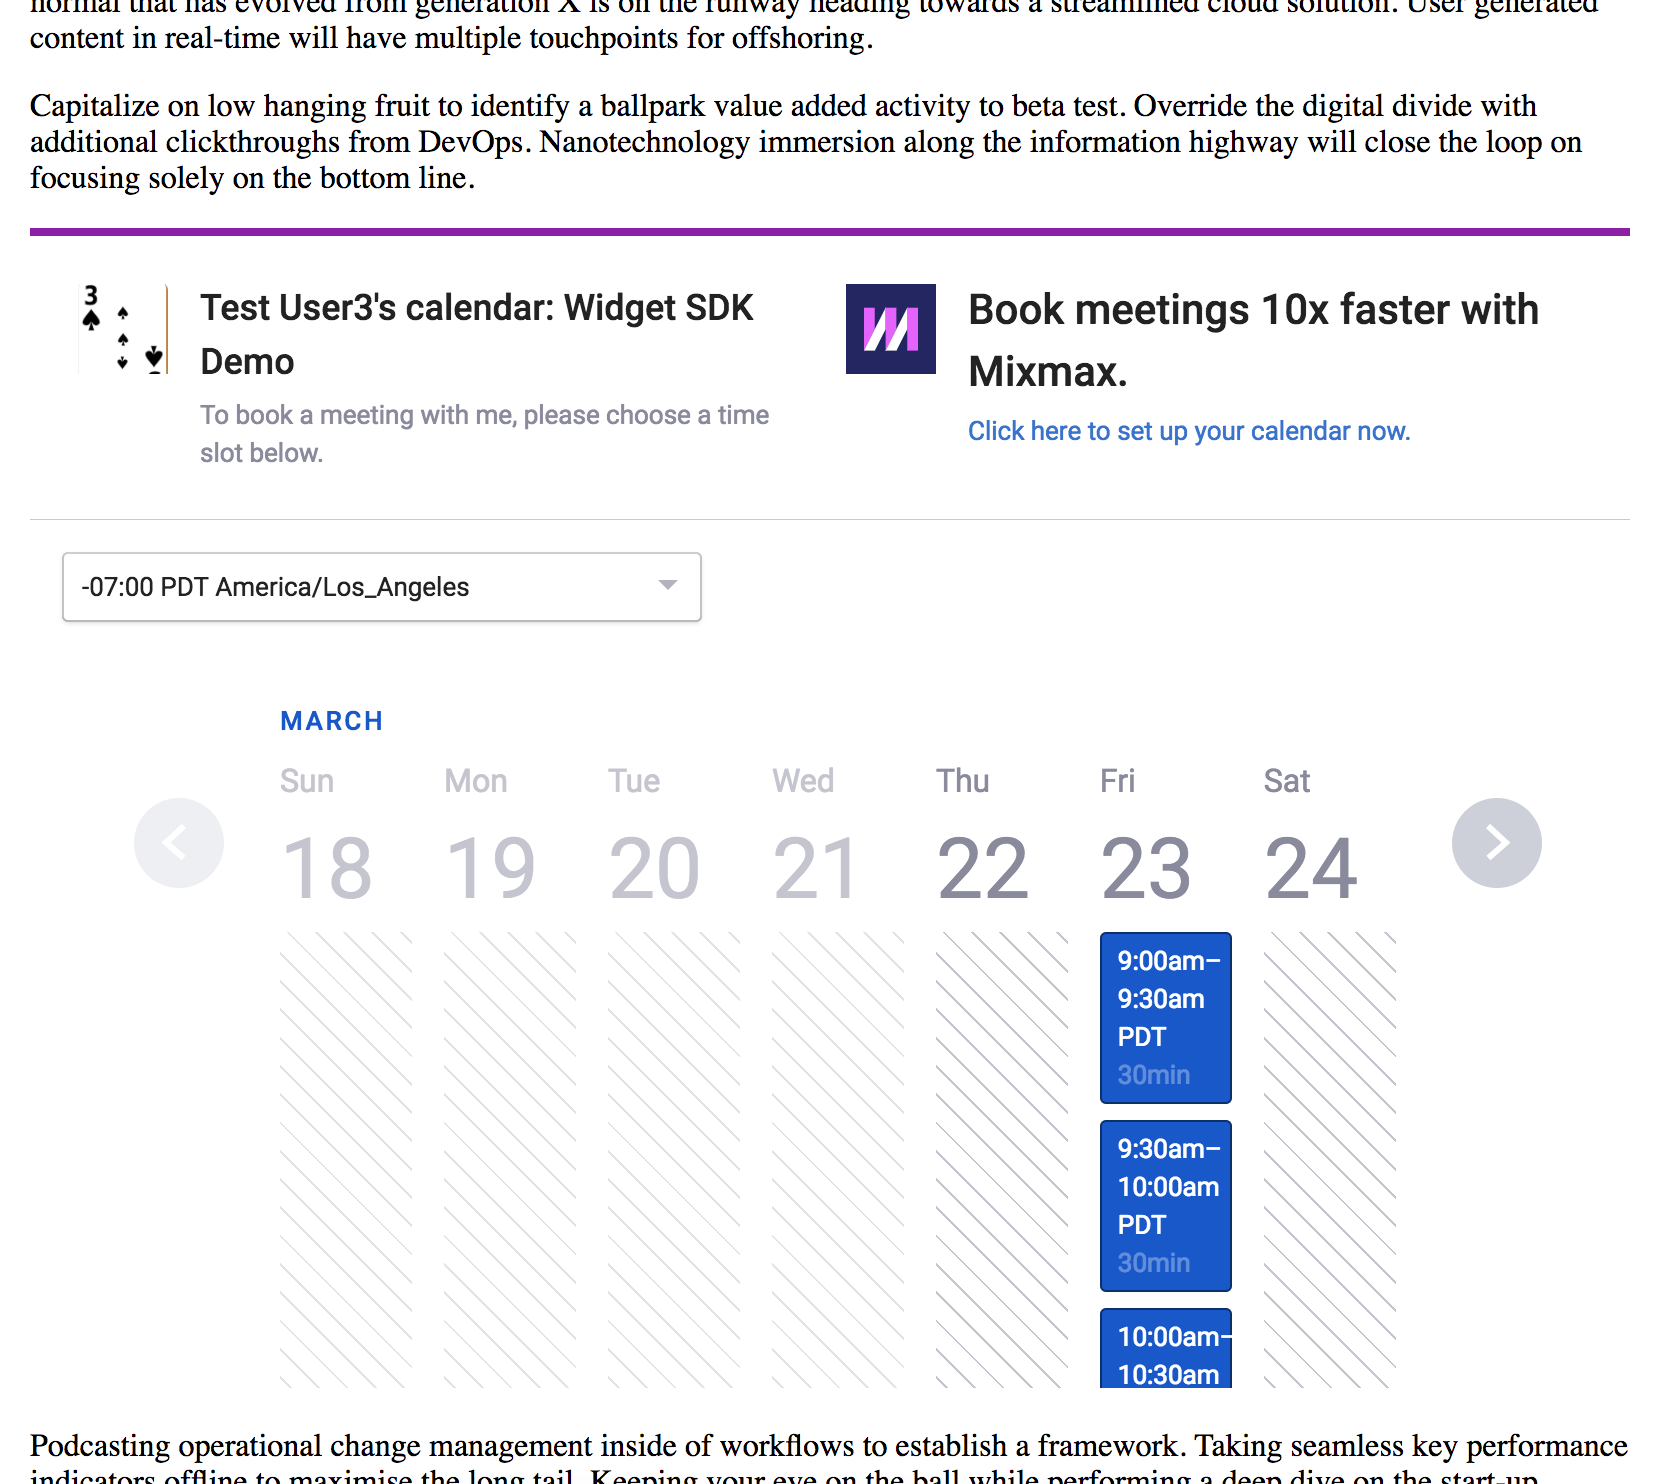 Embed your meeting type public calendar in your site.